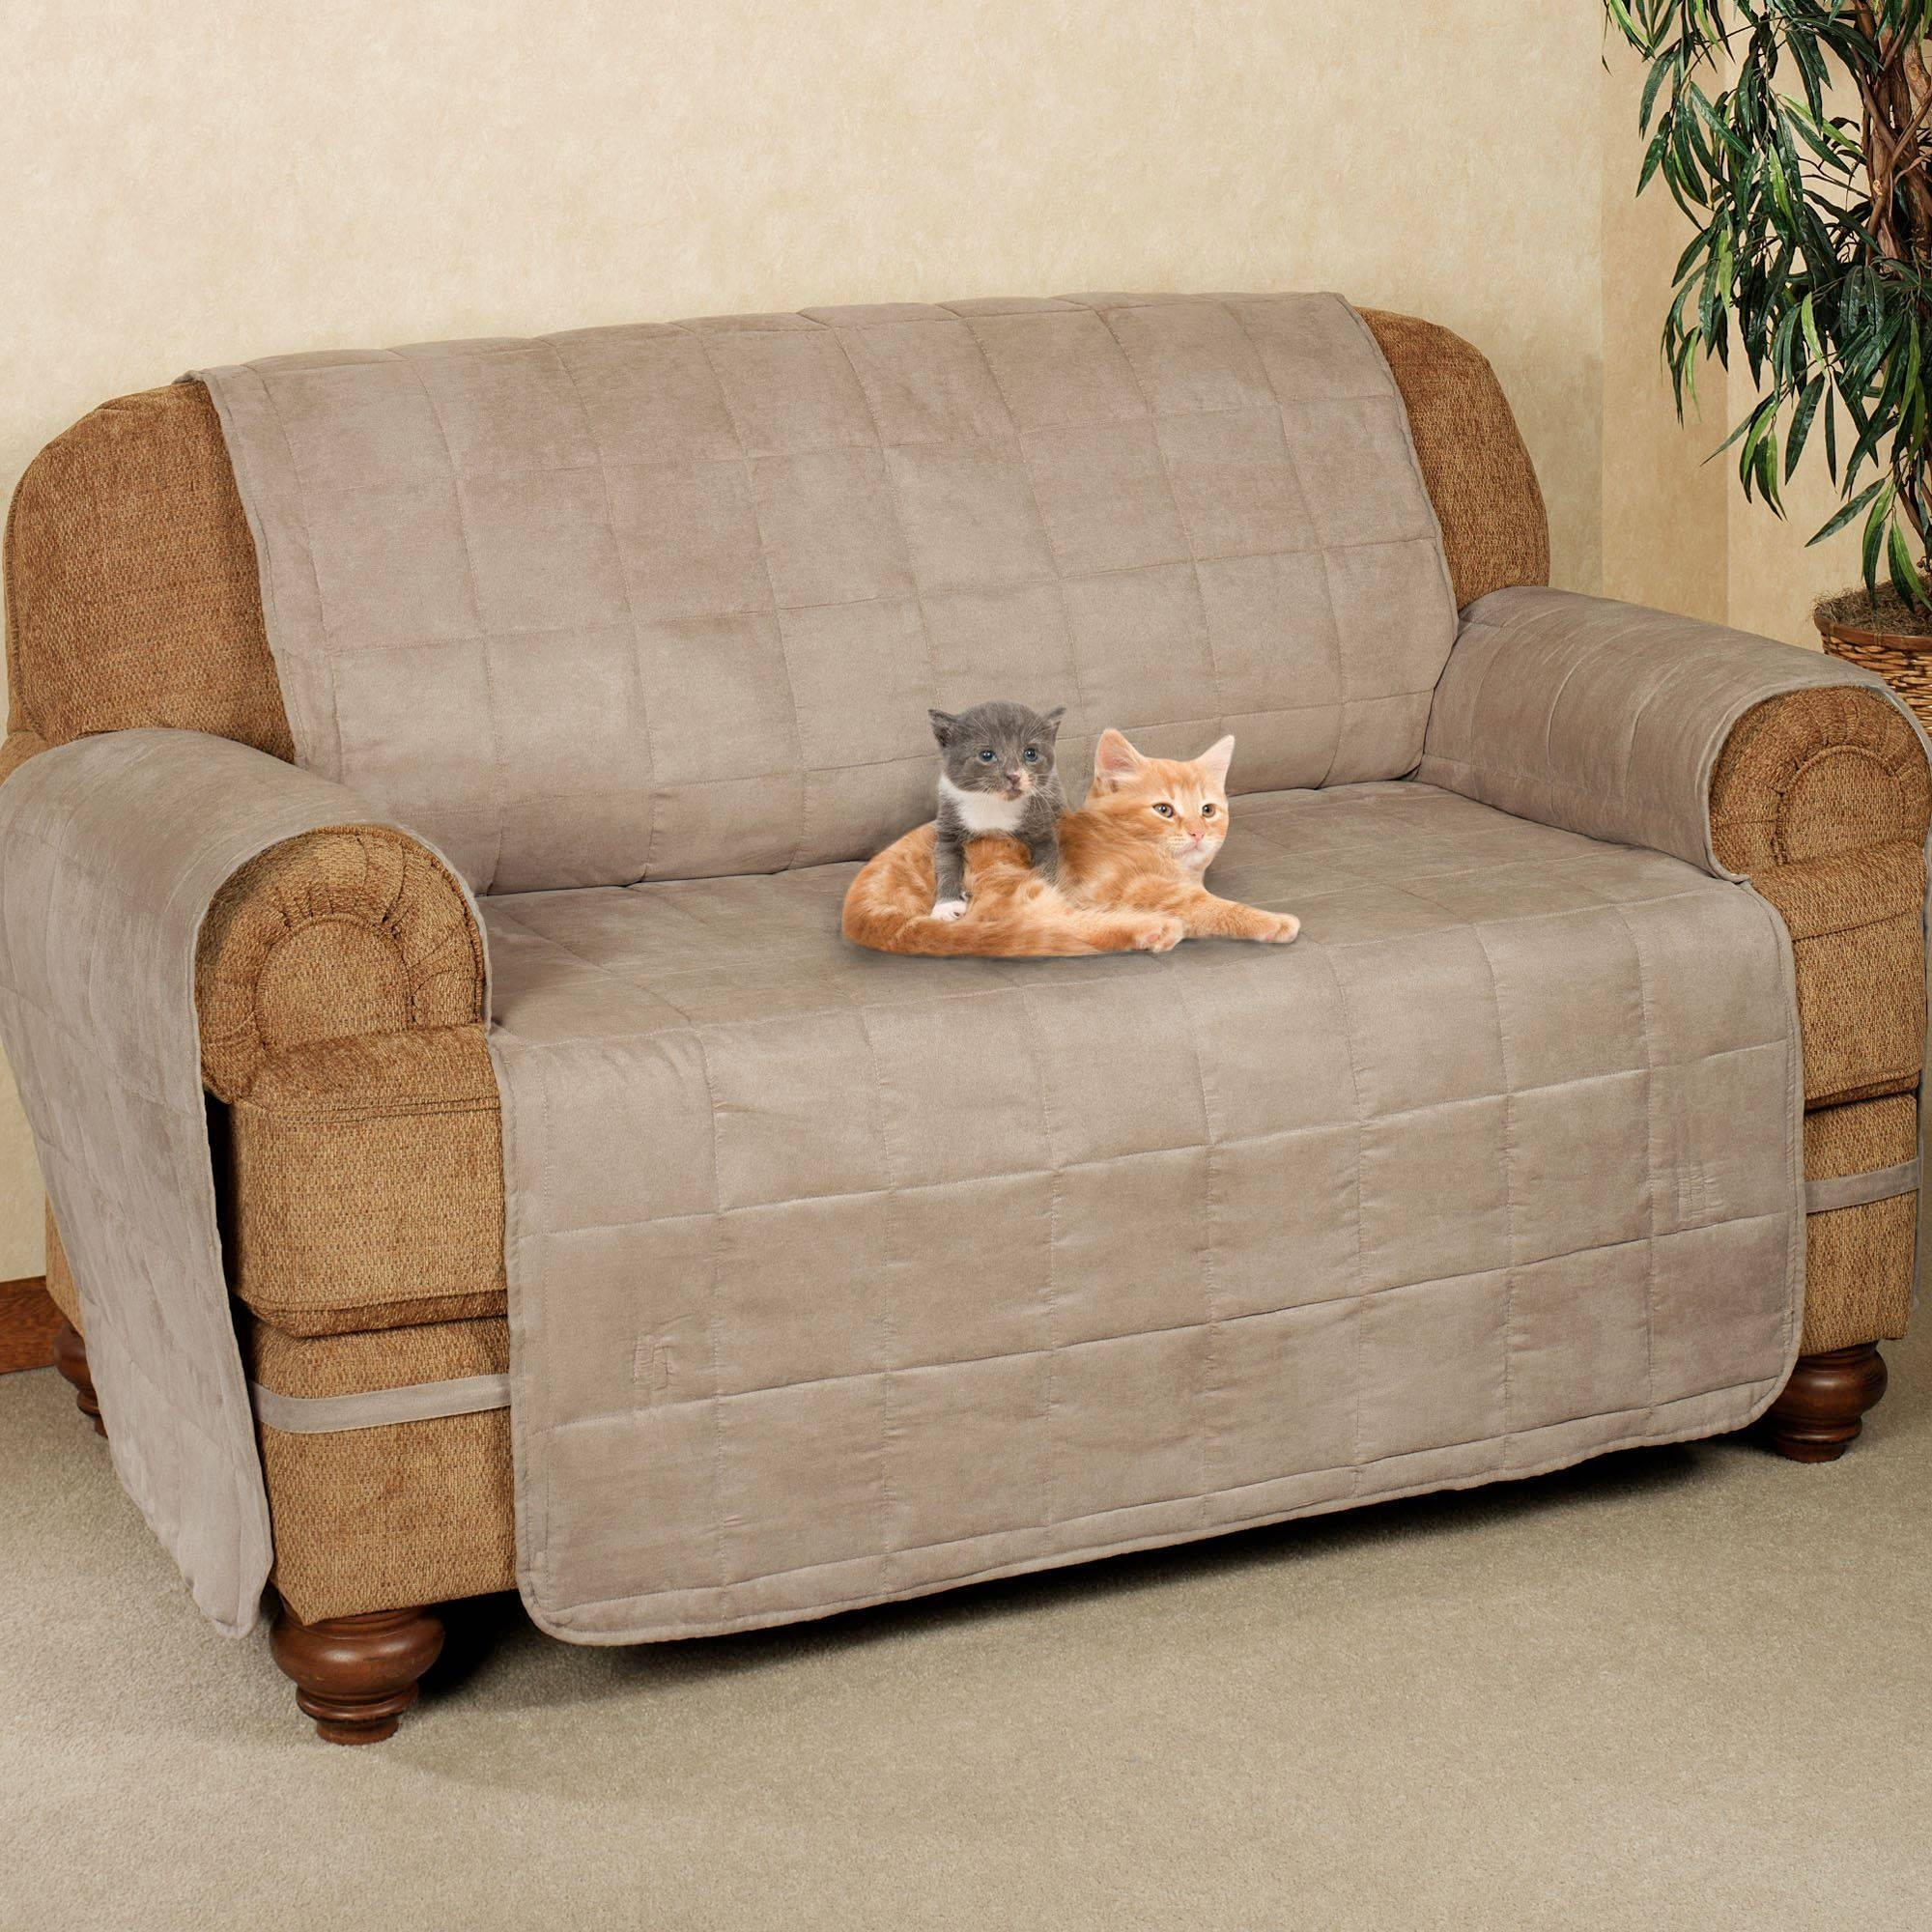 Ultimate Pet Furniture Protectors With Straps for Sofa Loveseat Slipcovers (Image 30 of 30)